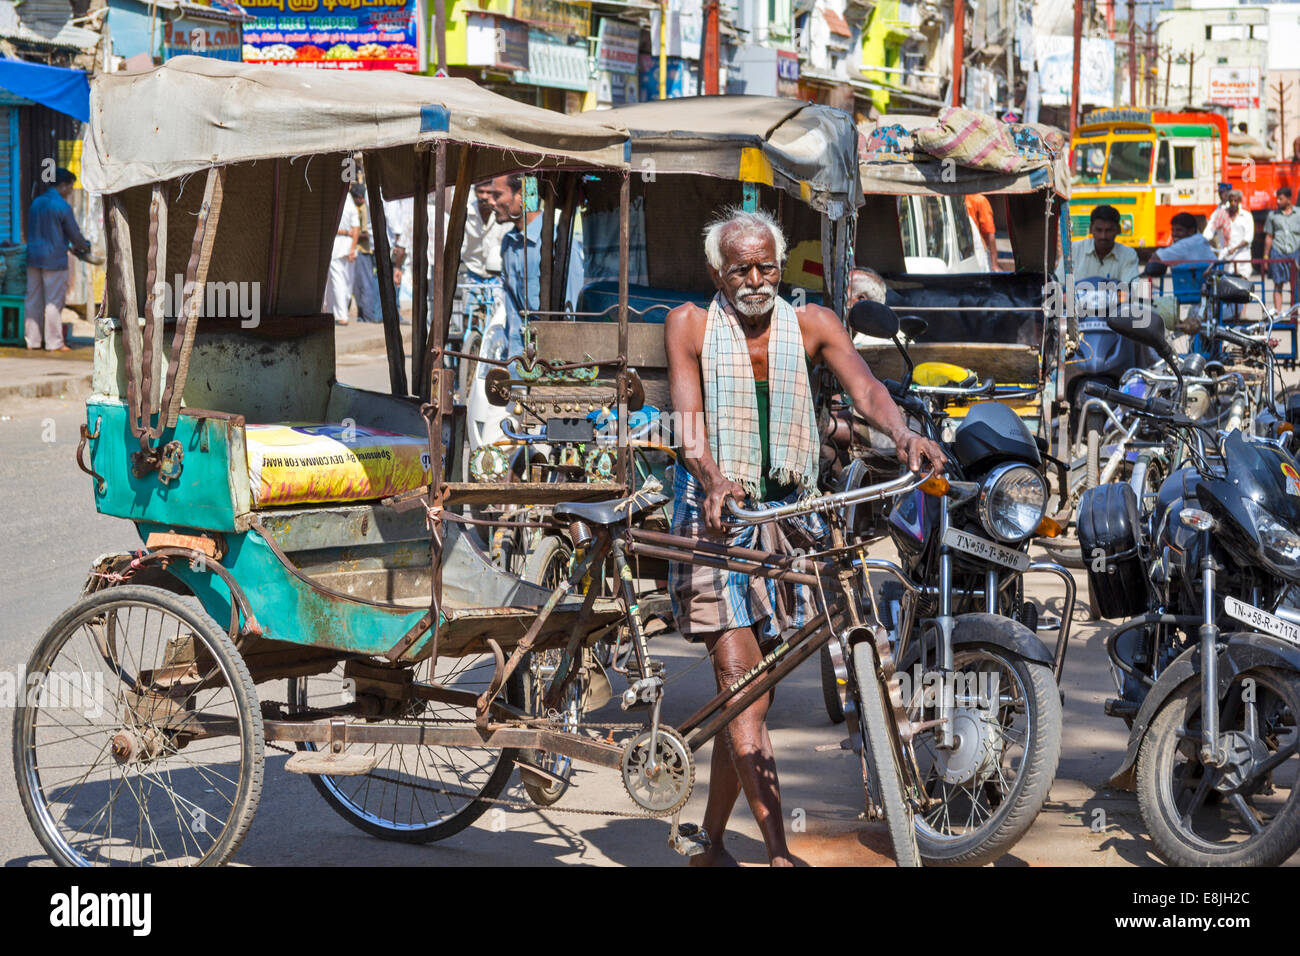 RICKSHAW DRIVER AND AN OLD RICKSHAW AMONG THE MODERN MACHINES IN THE STREETS OF INDIA - Stock Image